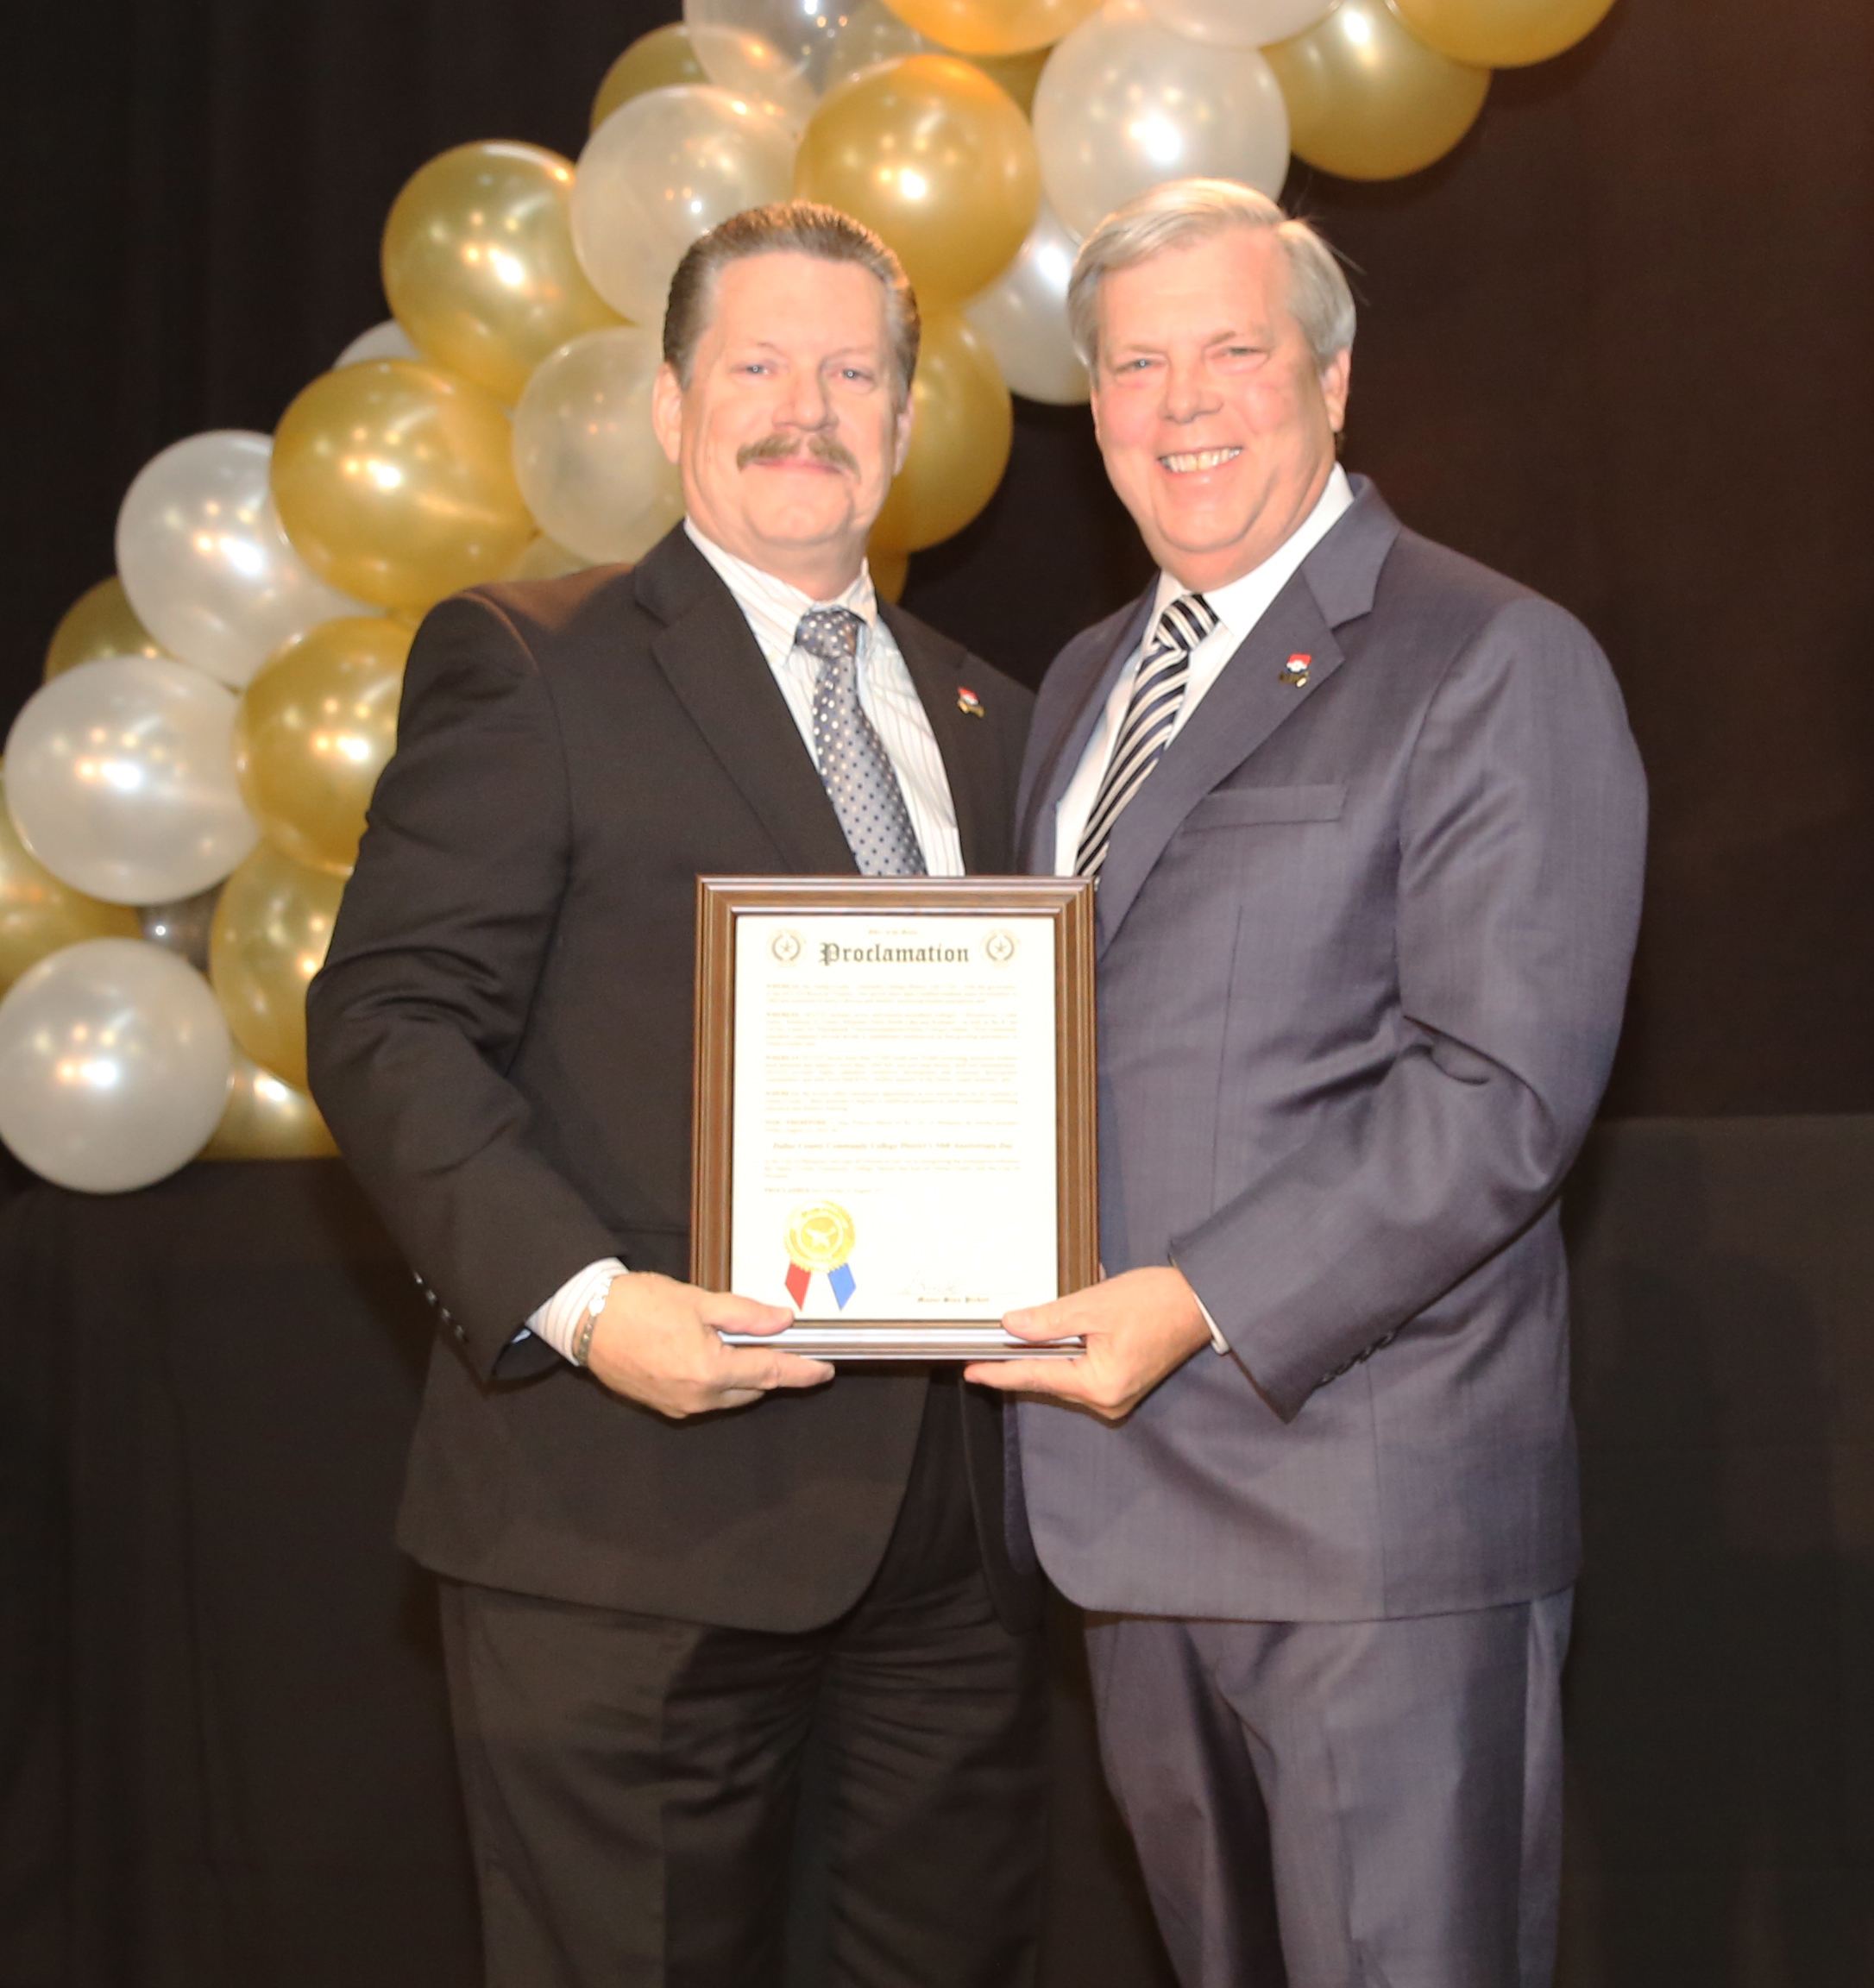 8-28-15 Mayor Stan Pickett and DCCCD Chancellor Dr Joe May.jpg